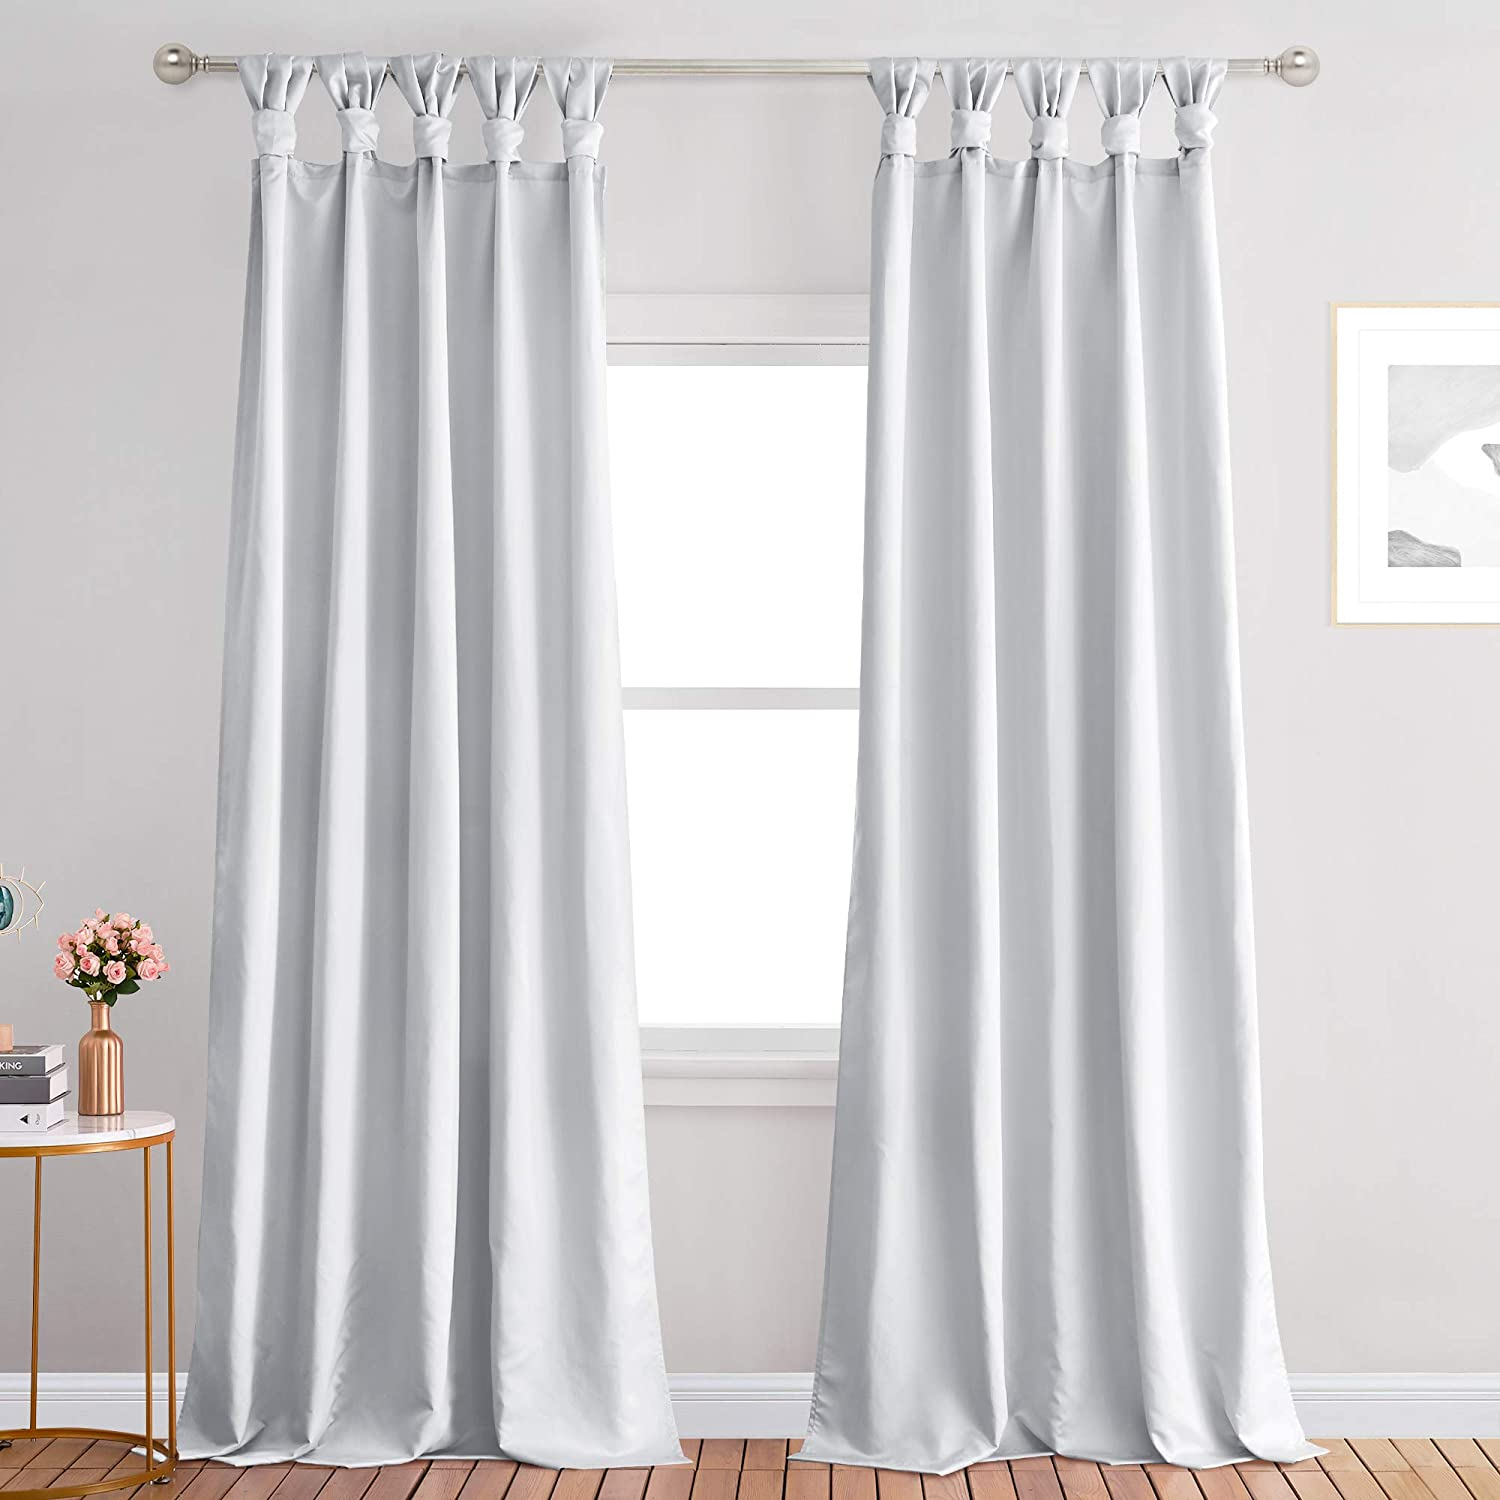 StangH Luxurious Home Decor Tab Top Faux Silk Curtain Drapes Light Reducing Privacy Window Treatment for Office / Studio / Living Room, Silver Grey, W52 x L96, 2 Panels